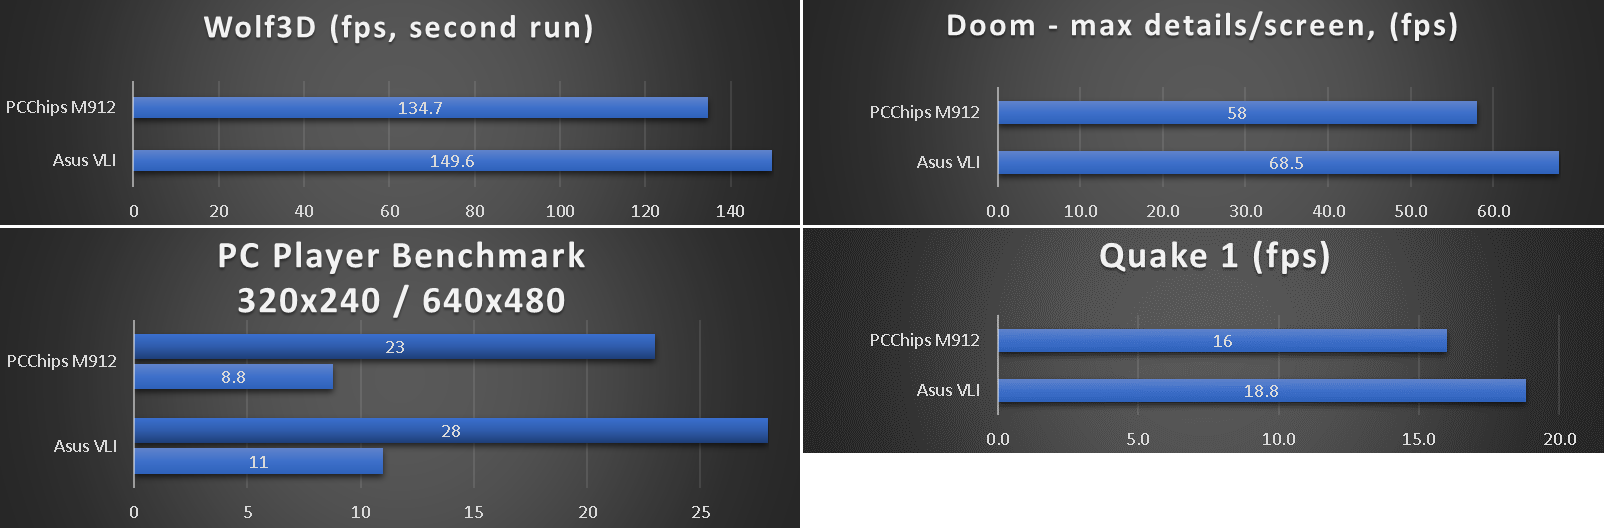 benchmarks_m912.png